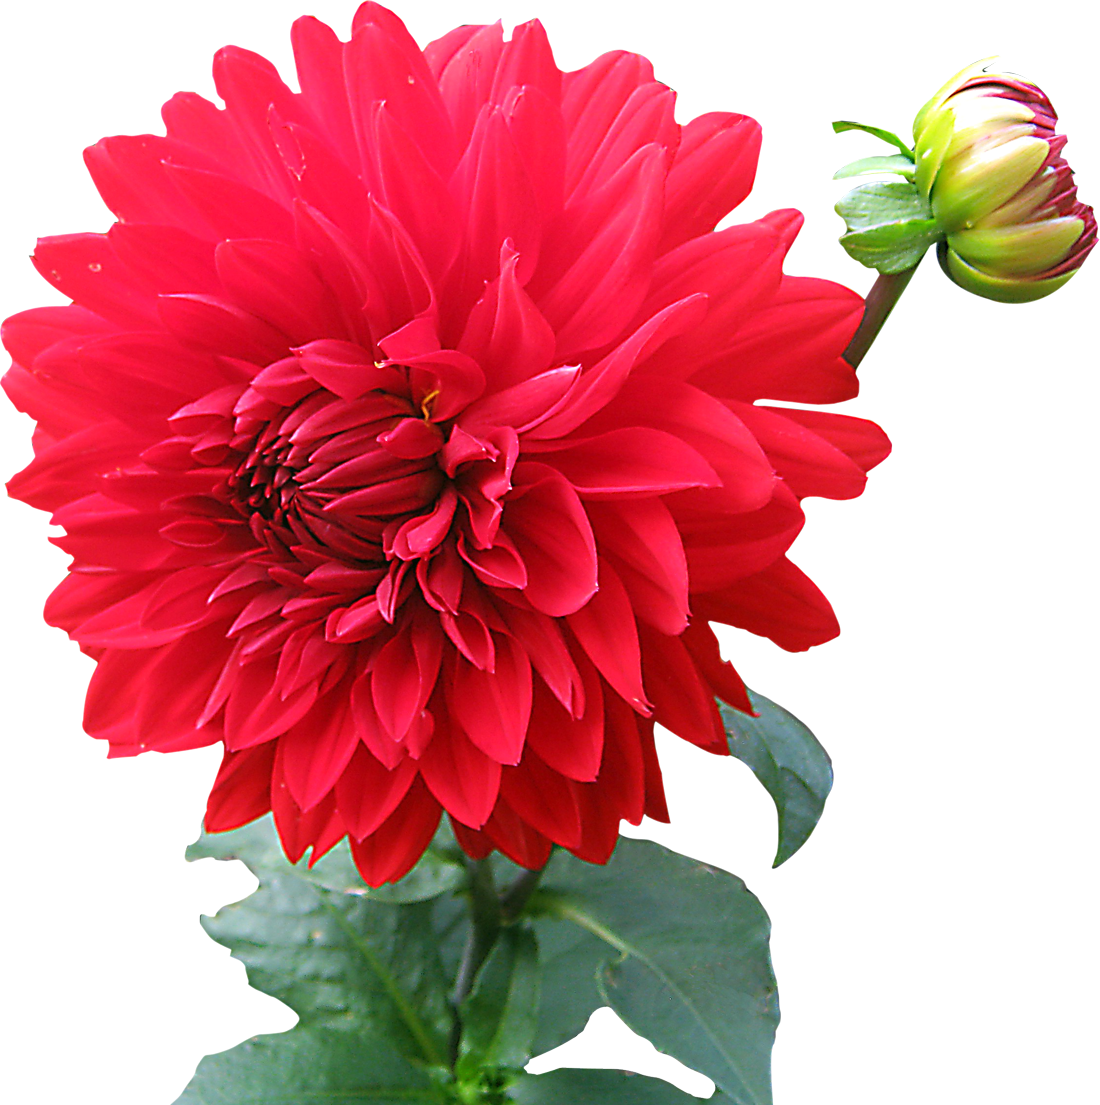 Flower images download image black and white download Dahlia Flower PNG image - PngPix image black and white download